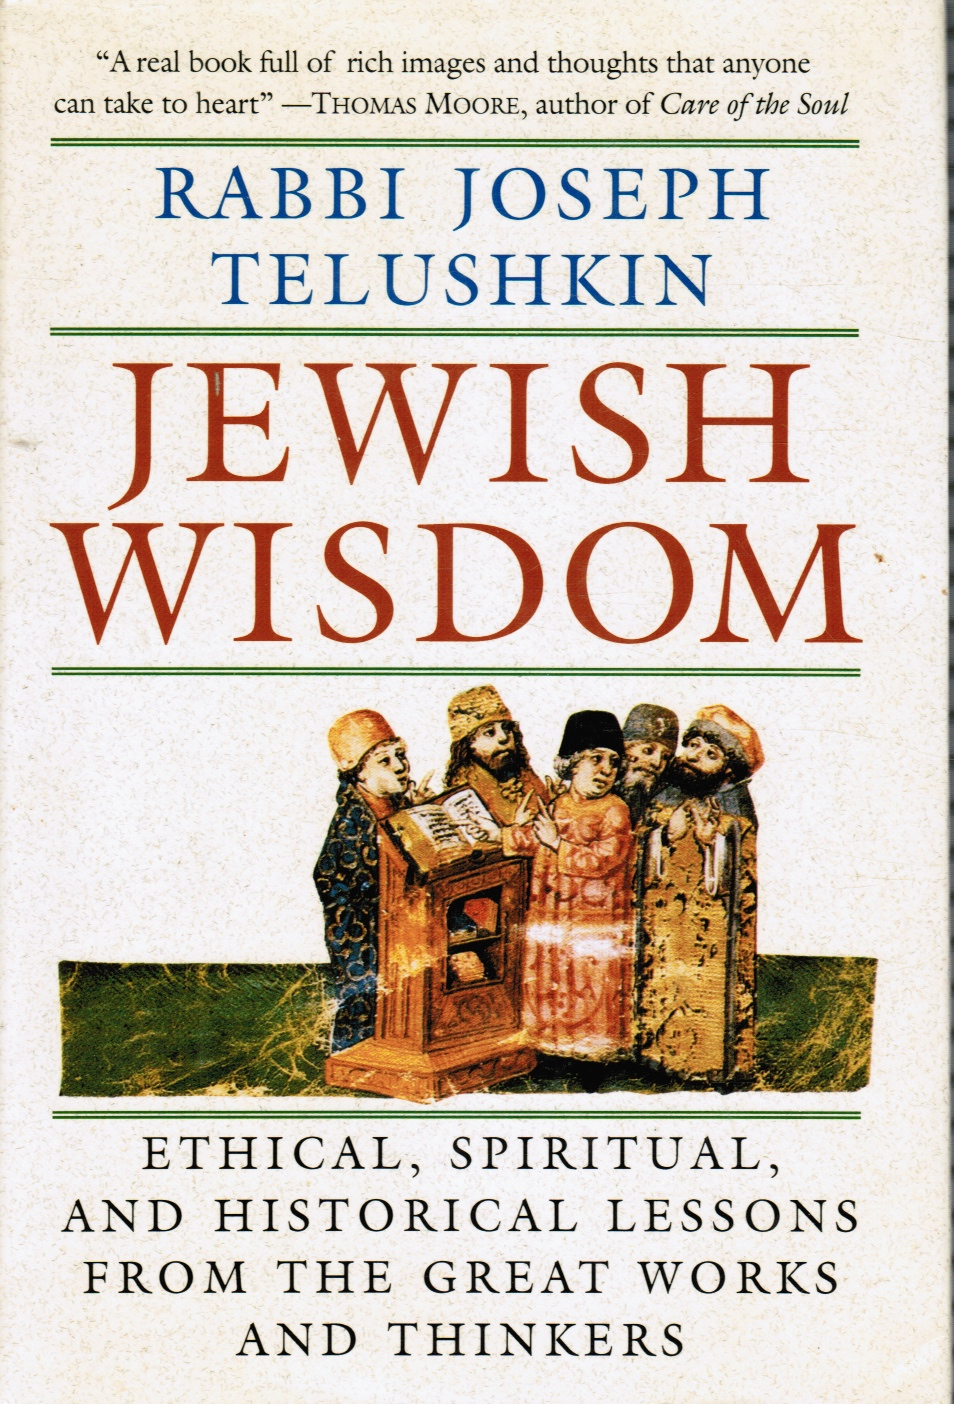 Image for Jewish Wisdom: Ethical, Spiritual, and Historical Lessons from the Great Works and Thinkers